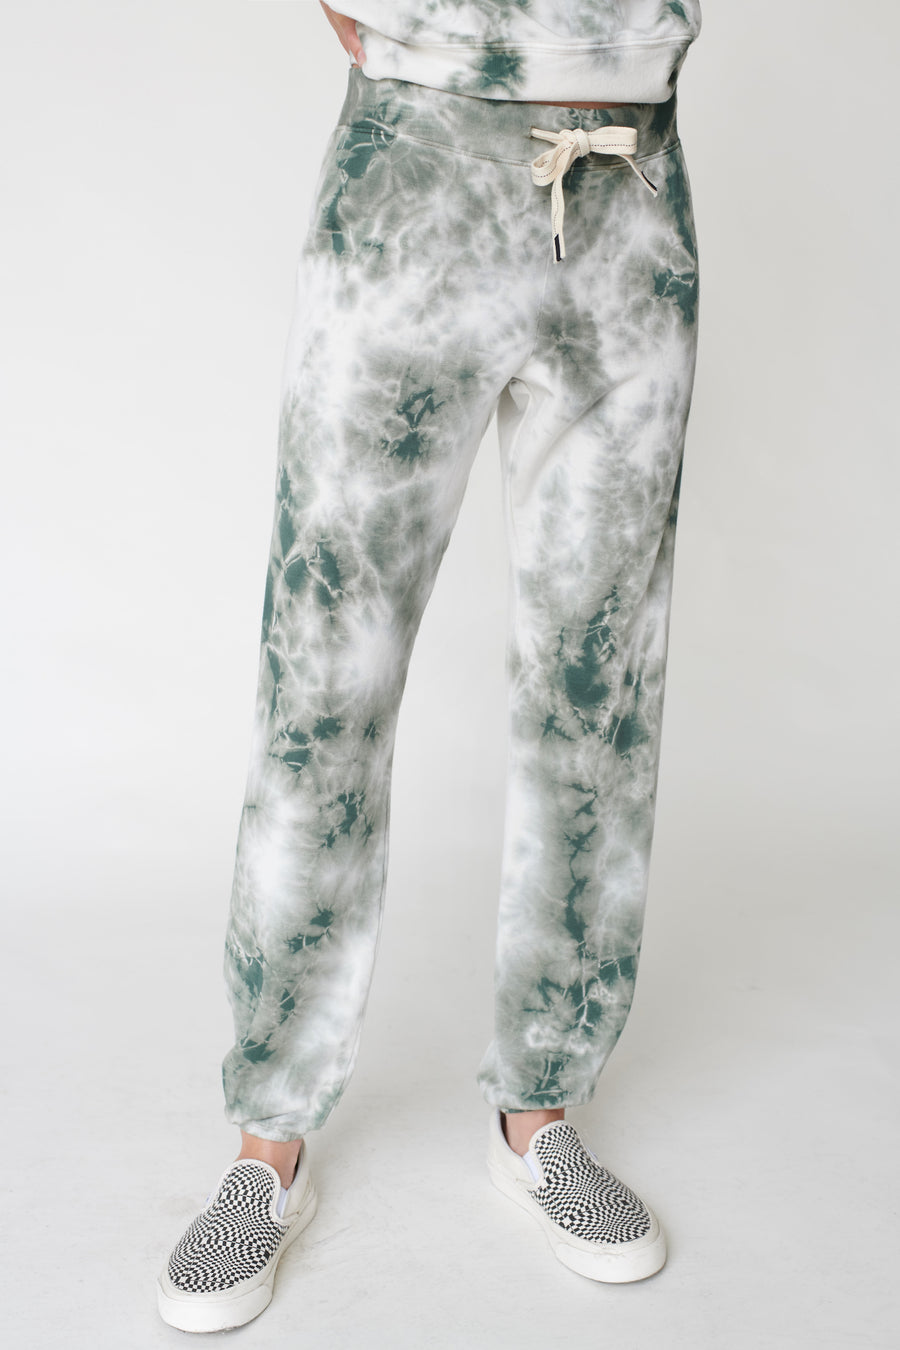 Stateside Fleece Pants in Army/White Tie Dye